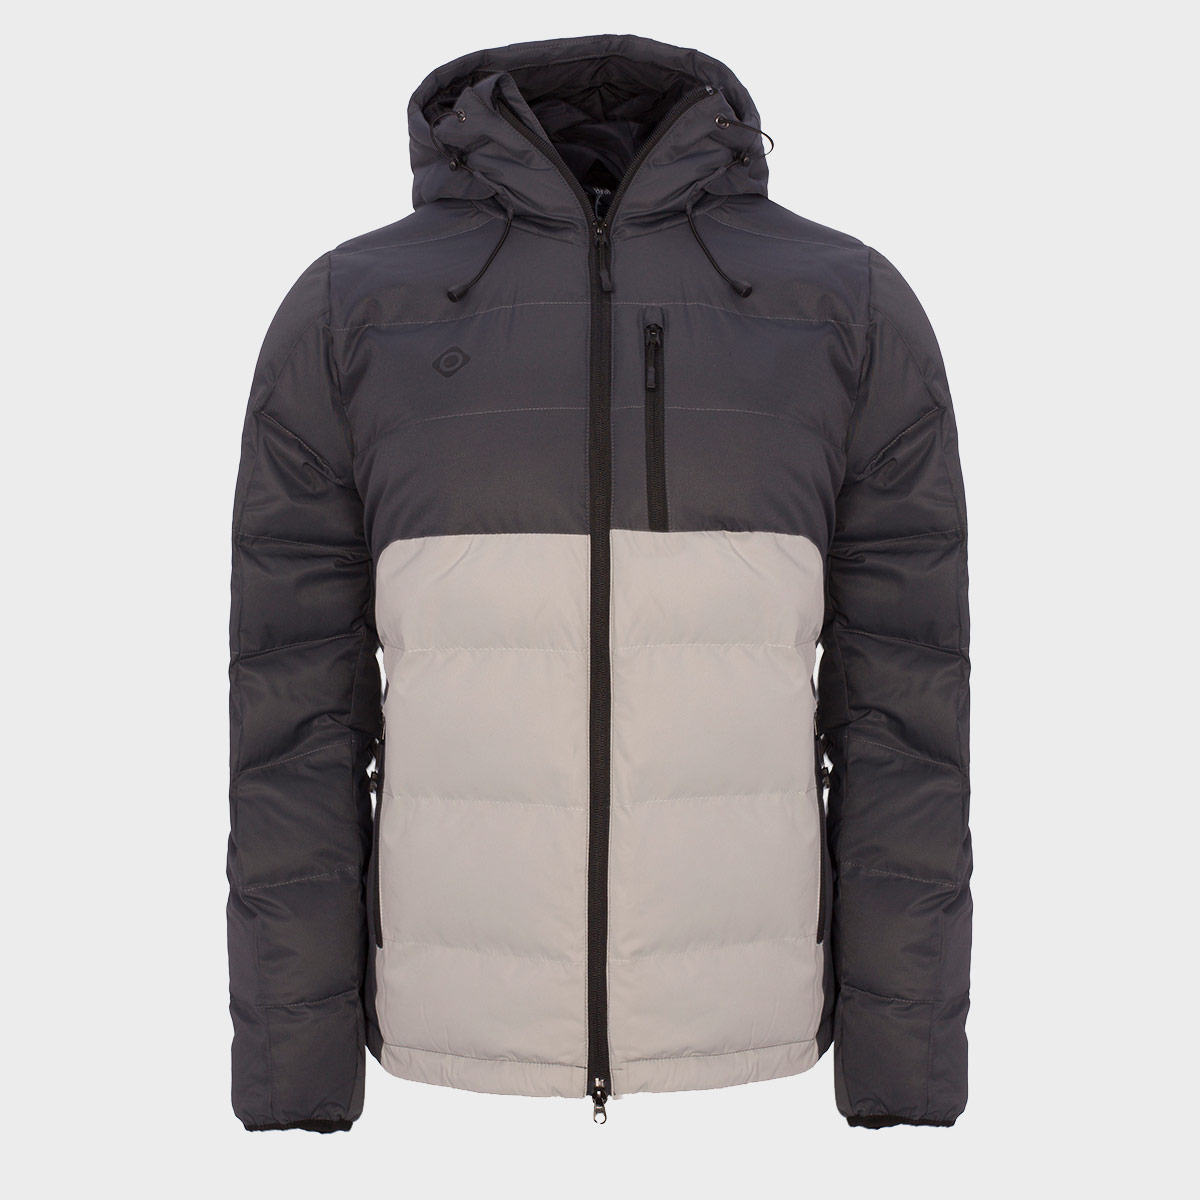 MAN'S AMPRIU PADDED JACKET WITH HOOD GREY